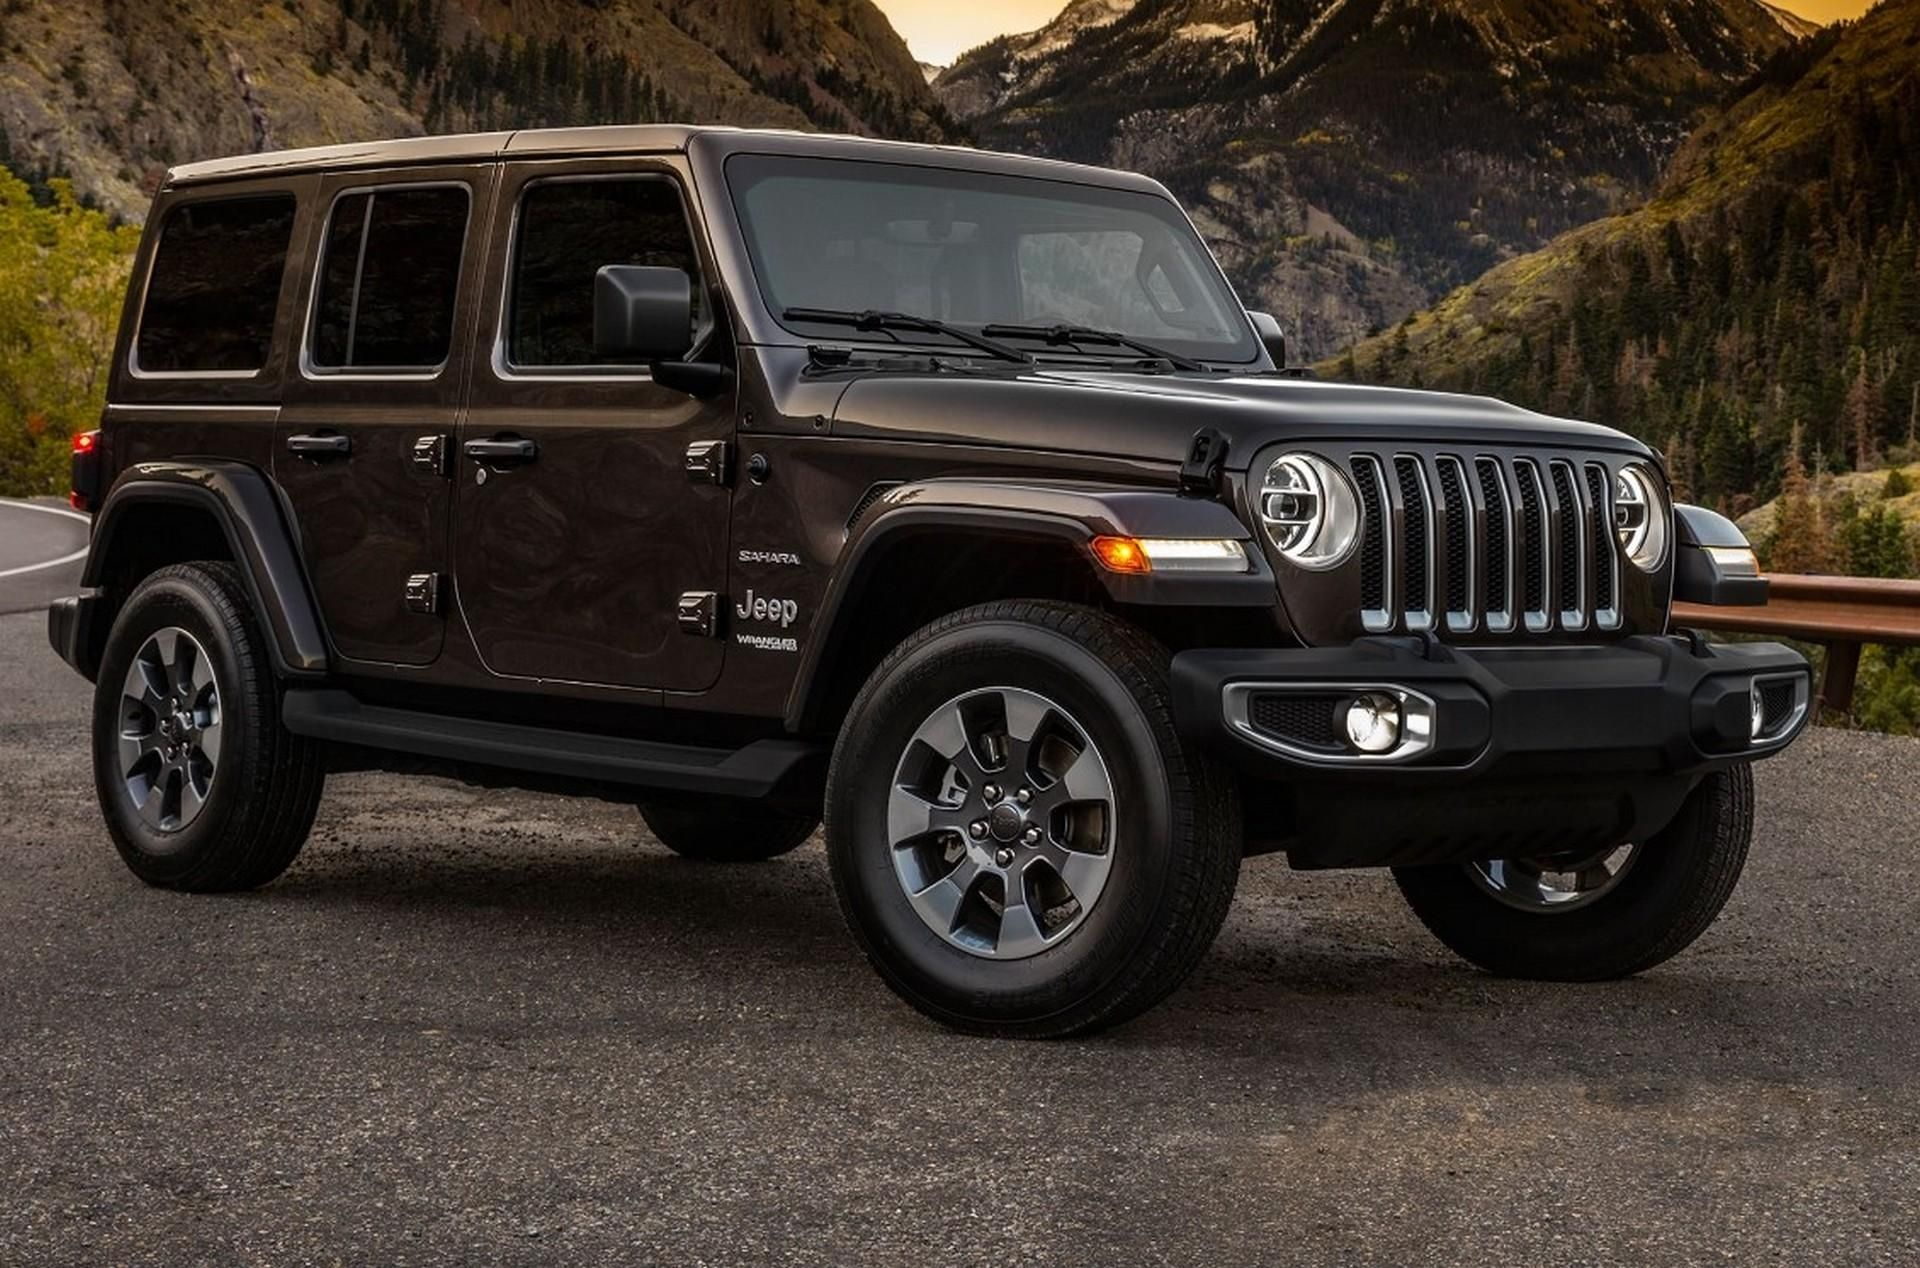 2019 Jeep Wrangler Unlimited Release Date Diesel Otoidn For